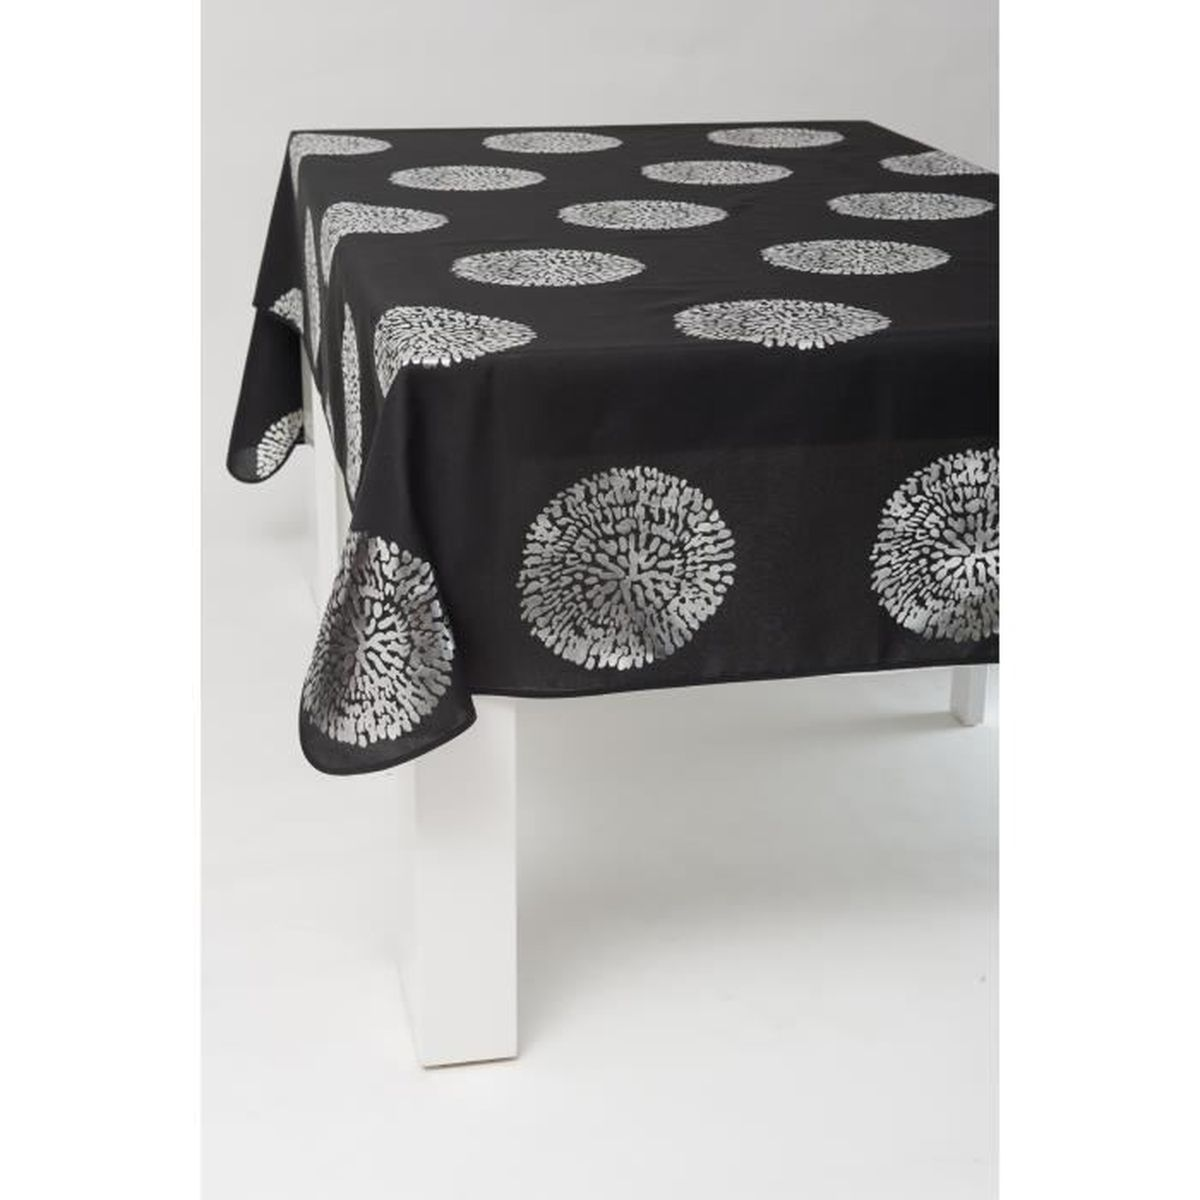 nappe rectangle 300x150 cm anti taches bulle argent e noir achat vente nappe de table. Black Bedroom Furniture Sets. Home Design Ideas